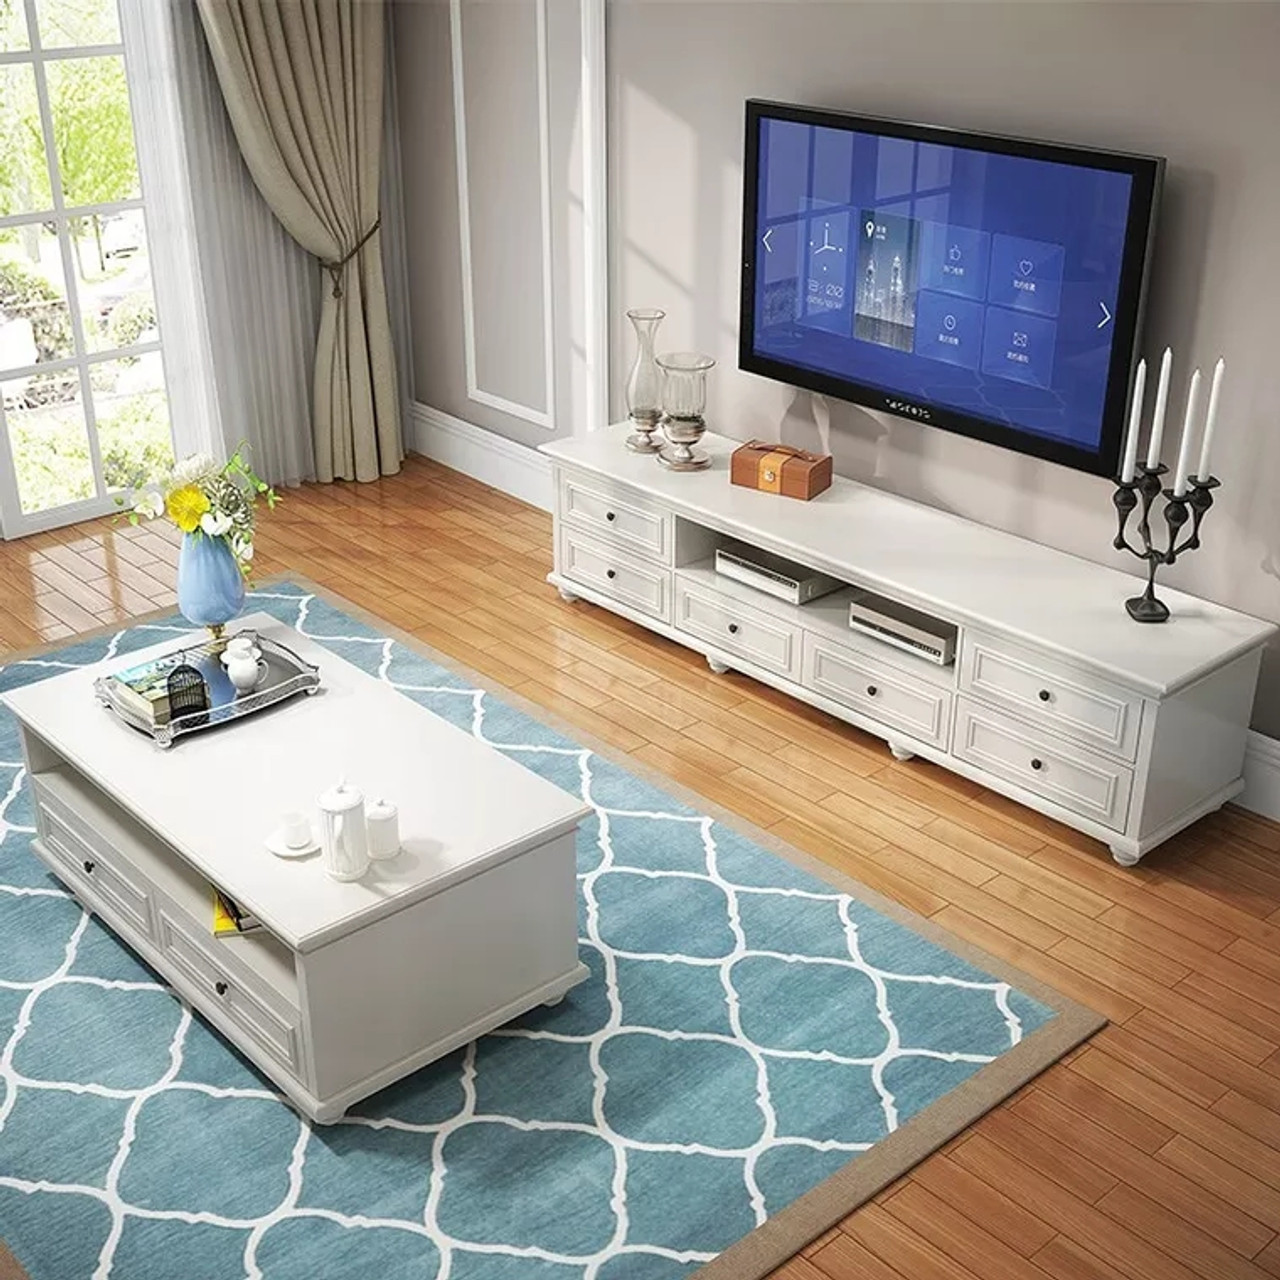 Designer TV Stands: Color Options and Styles to Explore